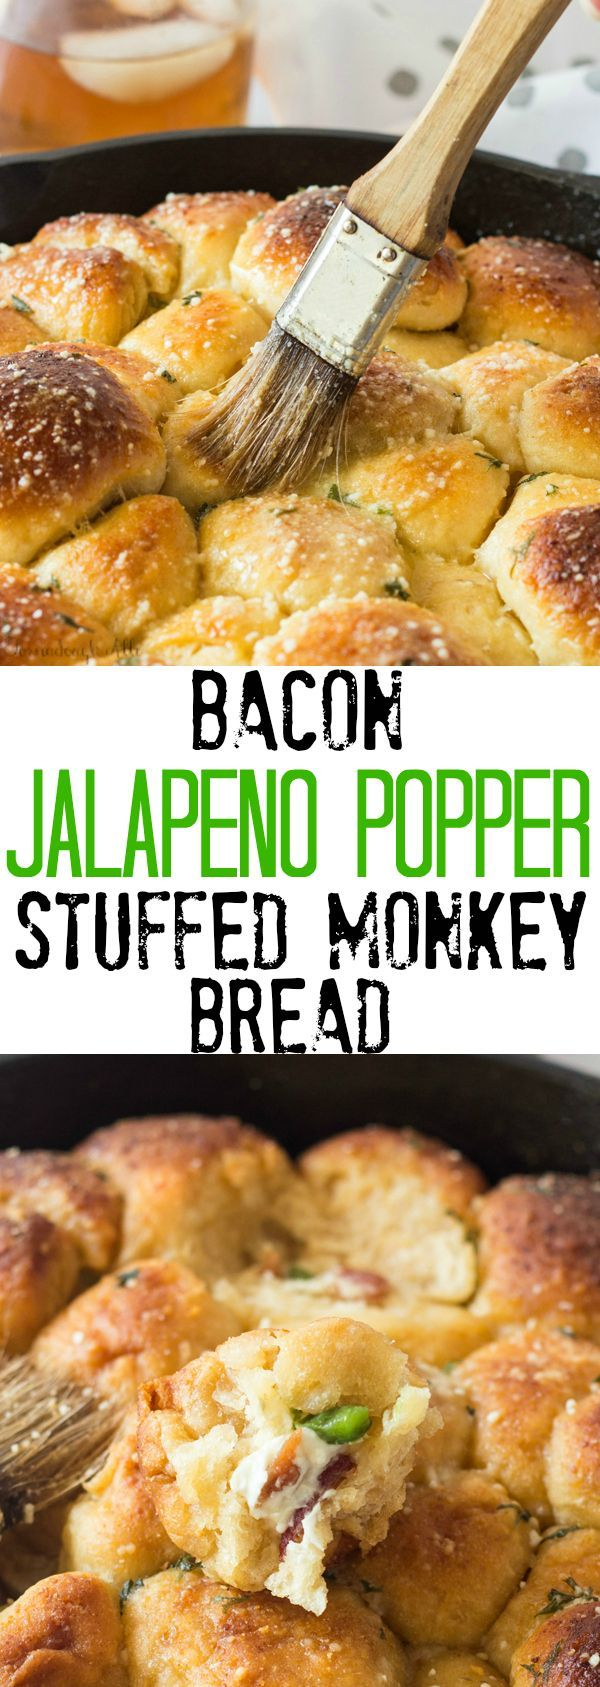 This Bacon Jalapeno Popper Stuffed Monkey Bread is perfect for game day! Stuffed with cream cheese, jalapeno and bacon, it's a fun twist on a classic game day favorite.